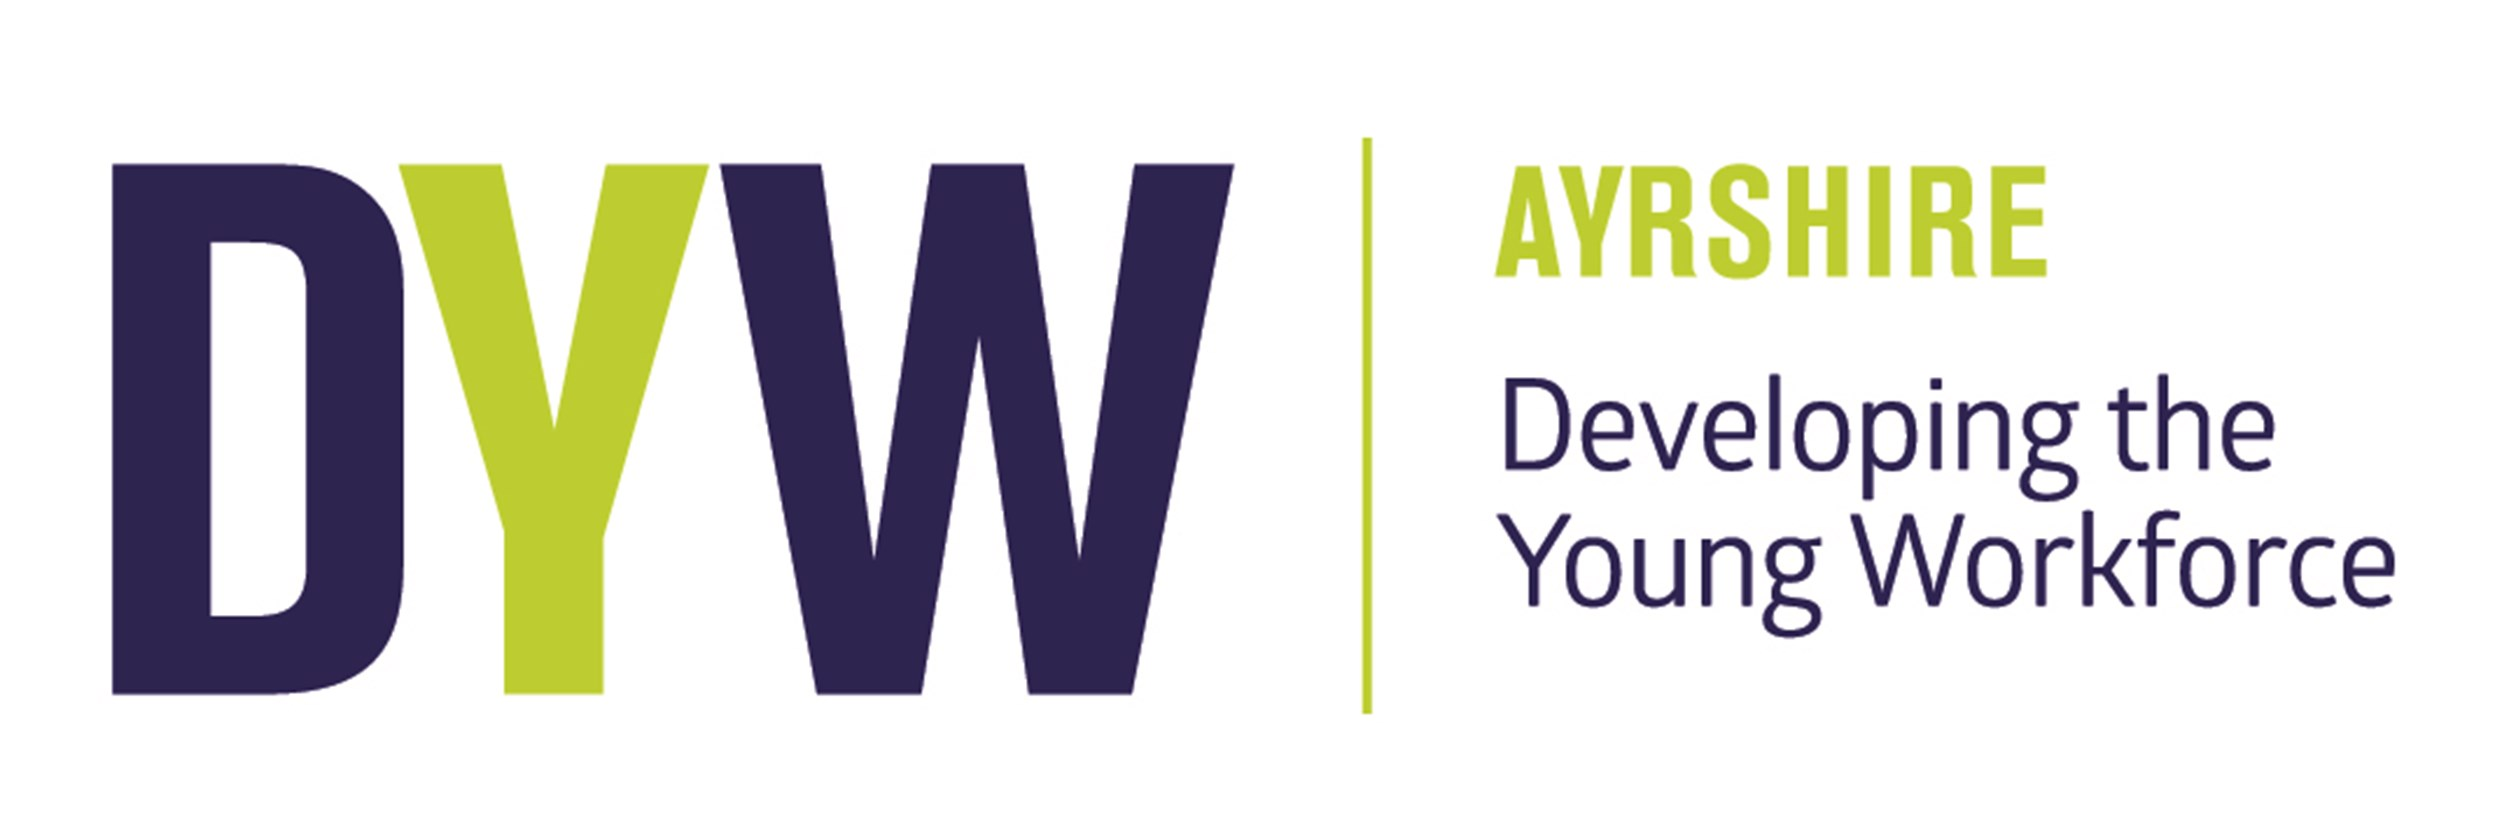 Developing the Young Workforce Ayrshire